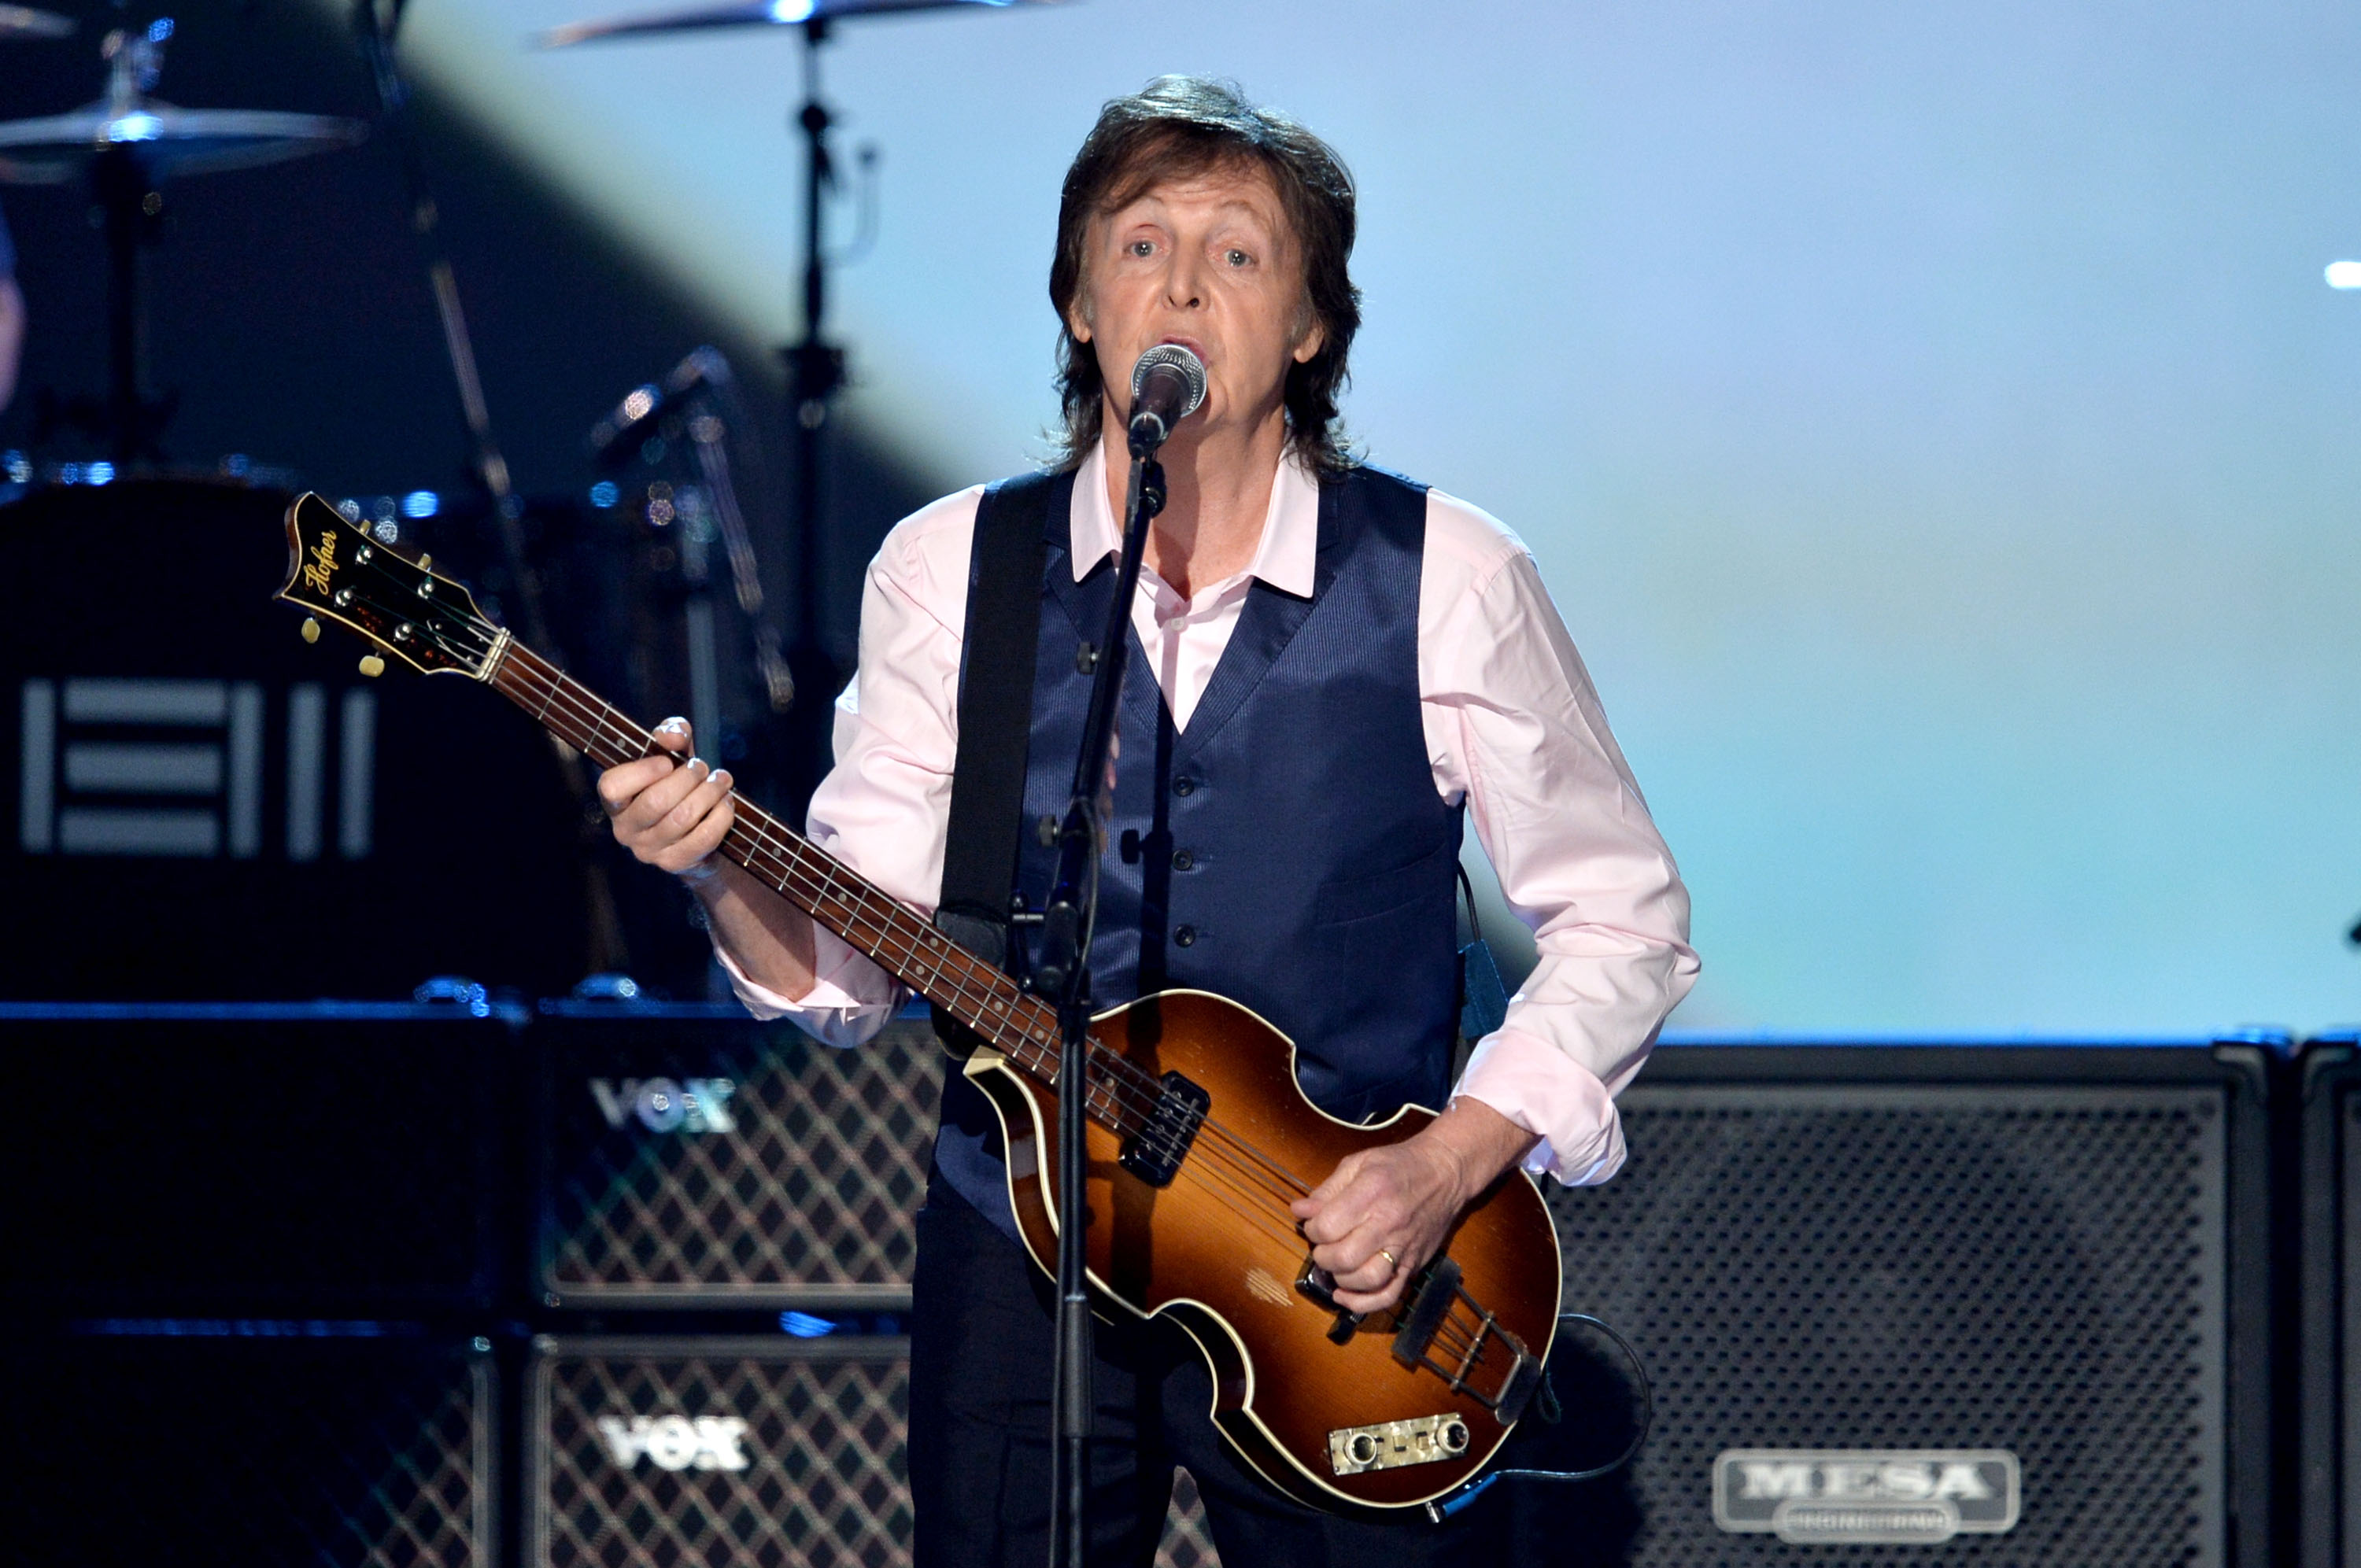 Why Is Paul McCartney In The Hospital Heres What We Know So Far